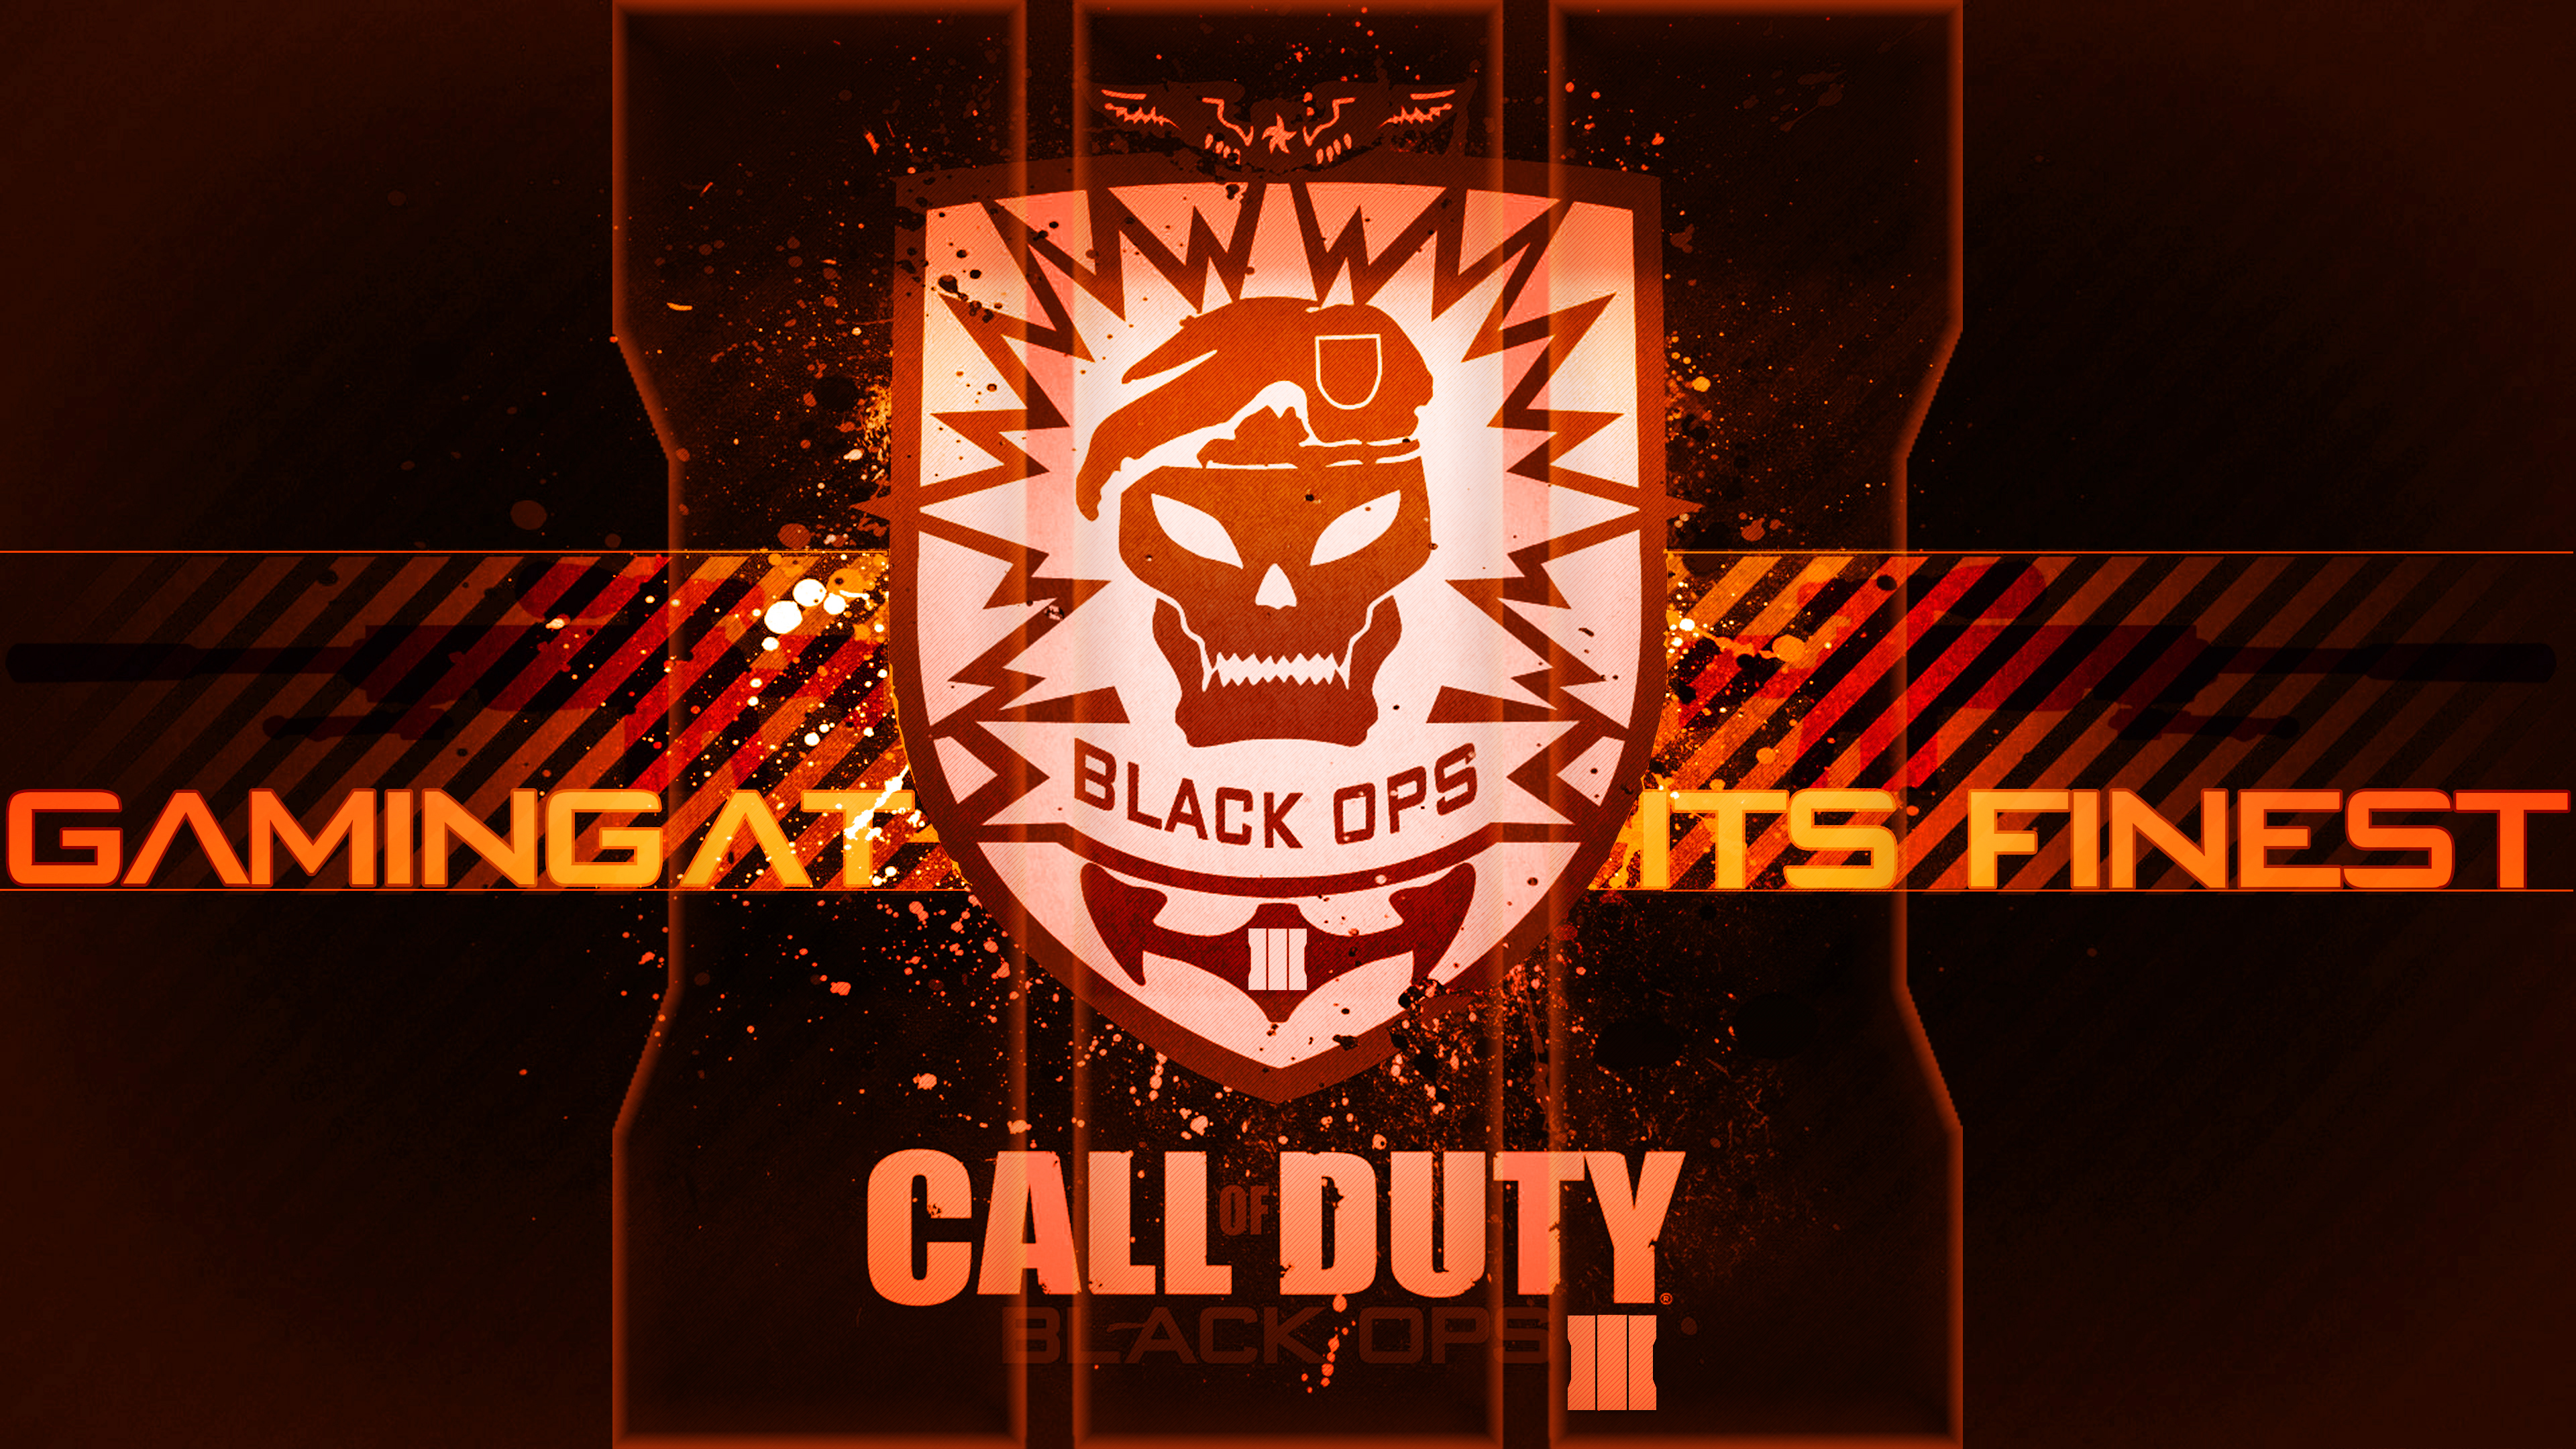 Call Of Duty Black Ops Iii Wallpaper 4k By Leafpenguins On